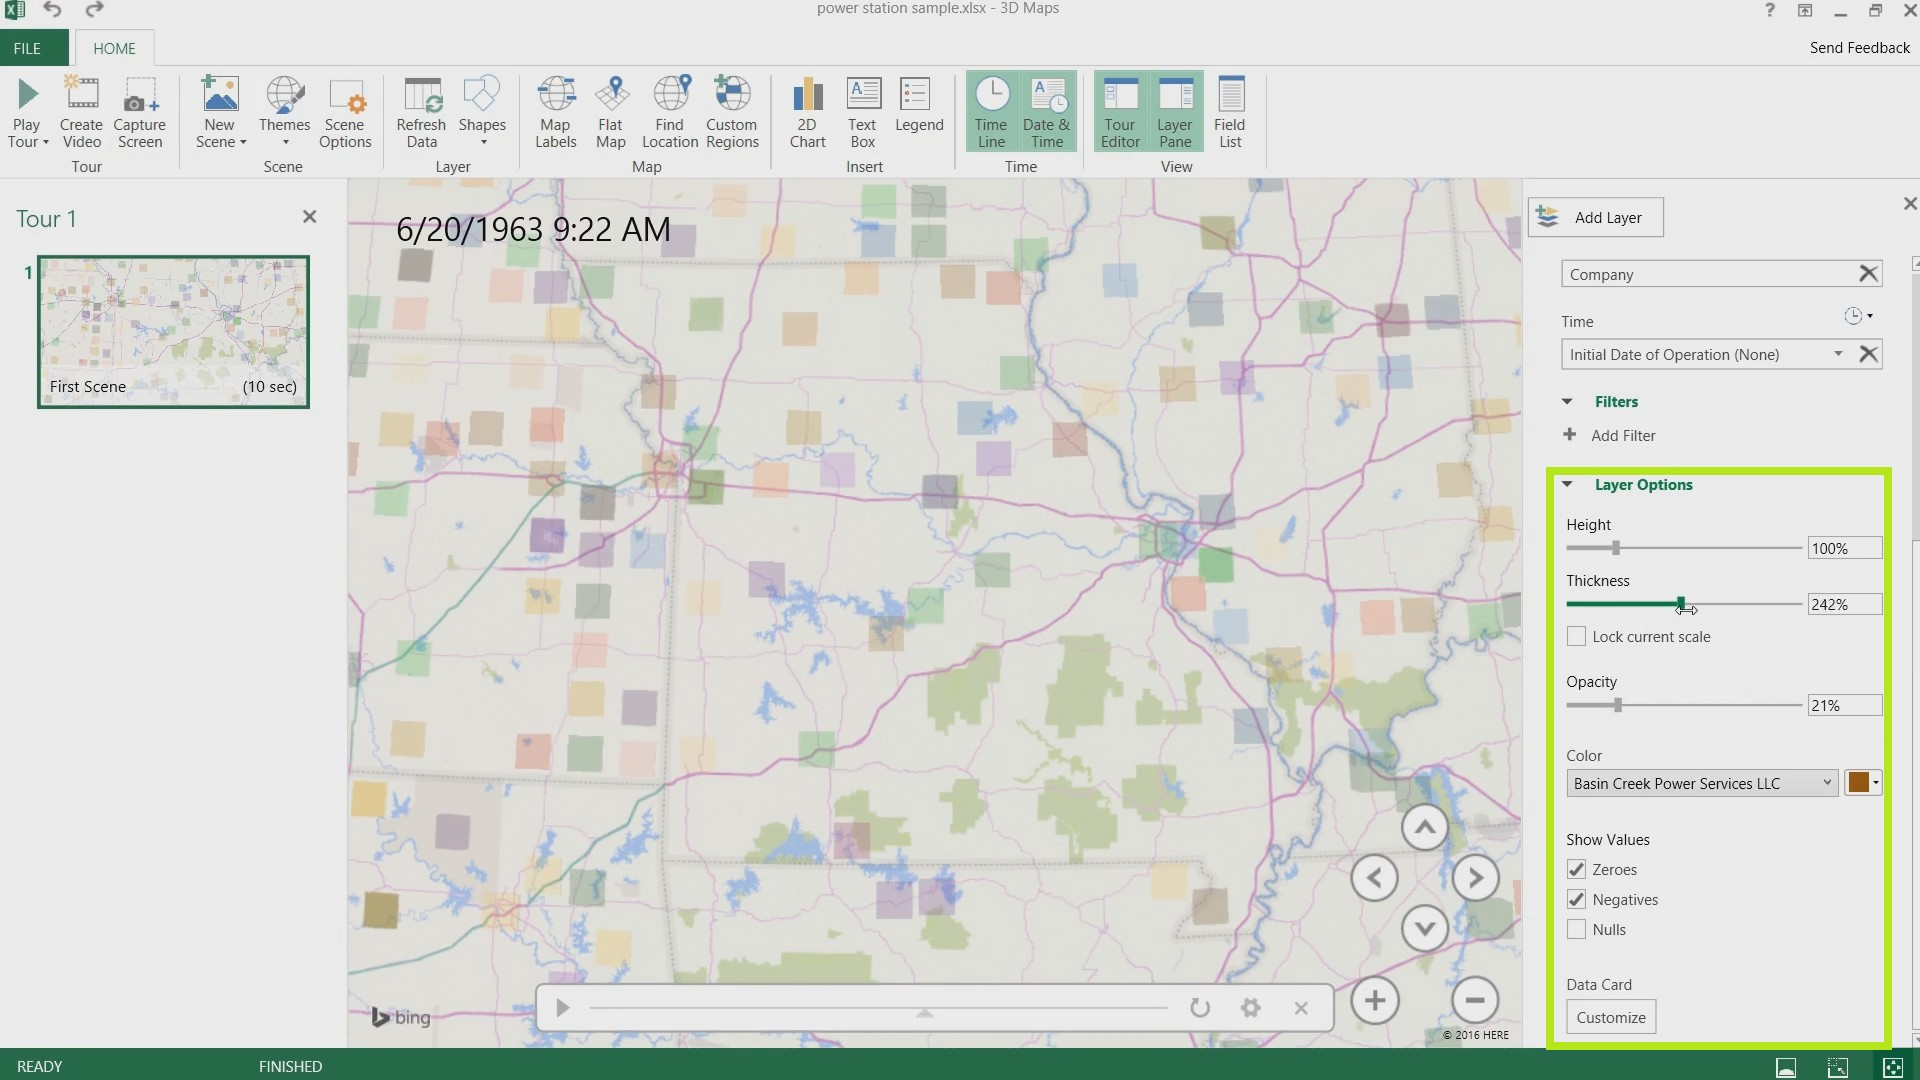 3D Maps in Excel 2016